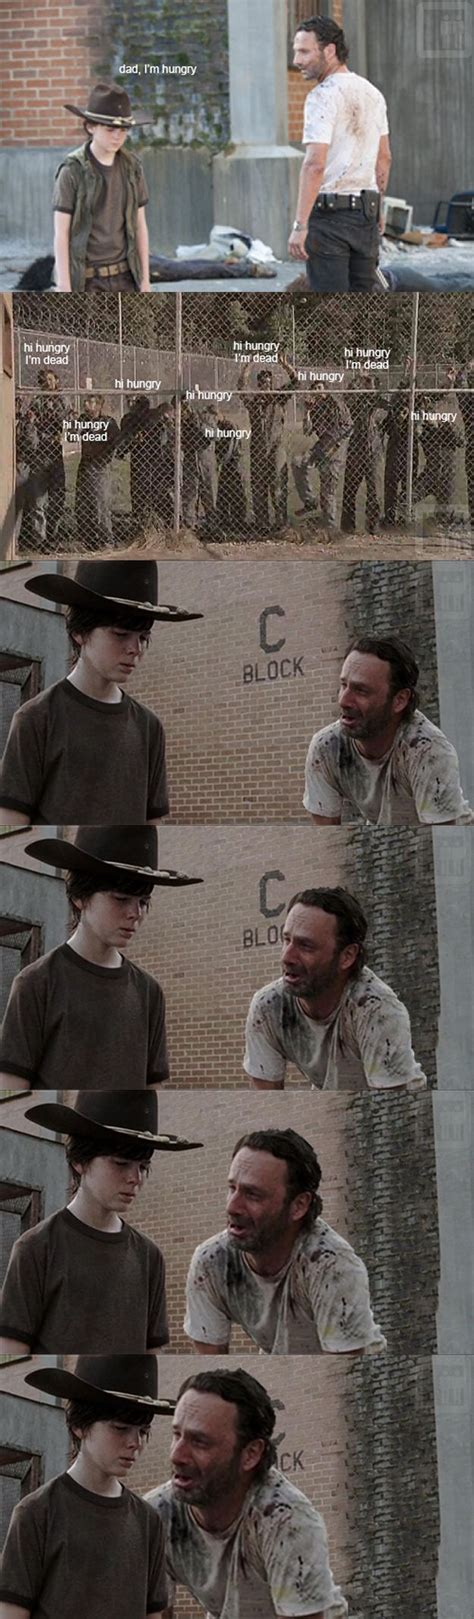 Walking Dead Rick Crying Meme - hilarious dad jokes from the walking dead s rick grimes